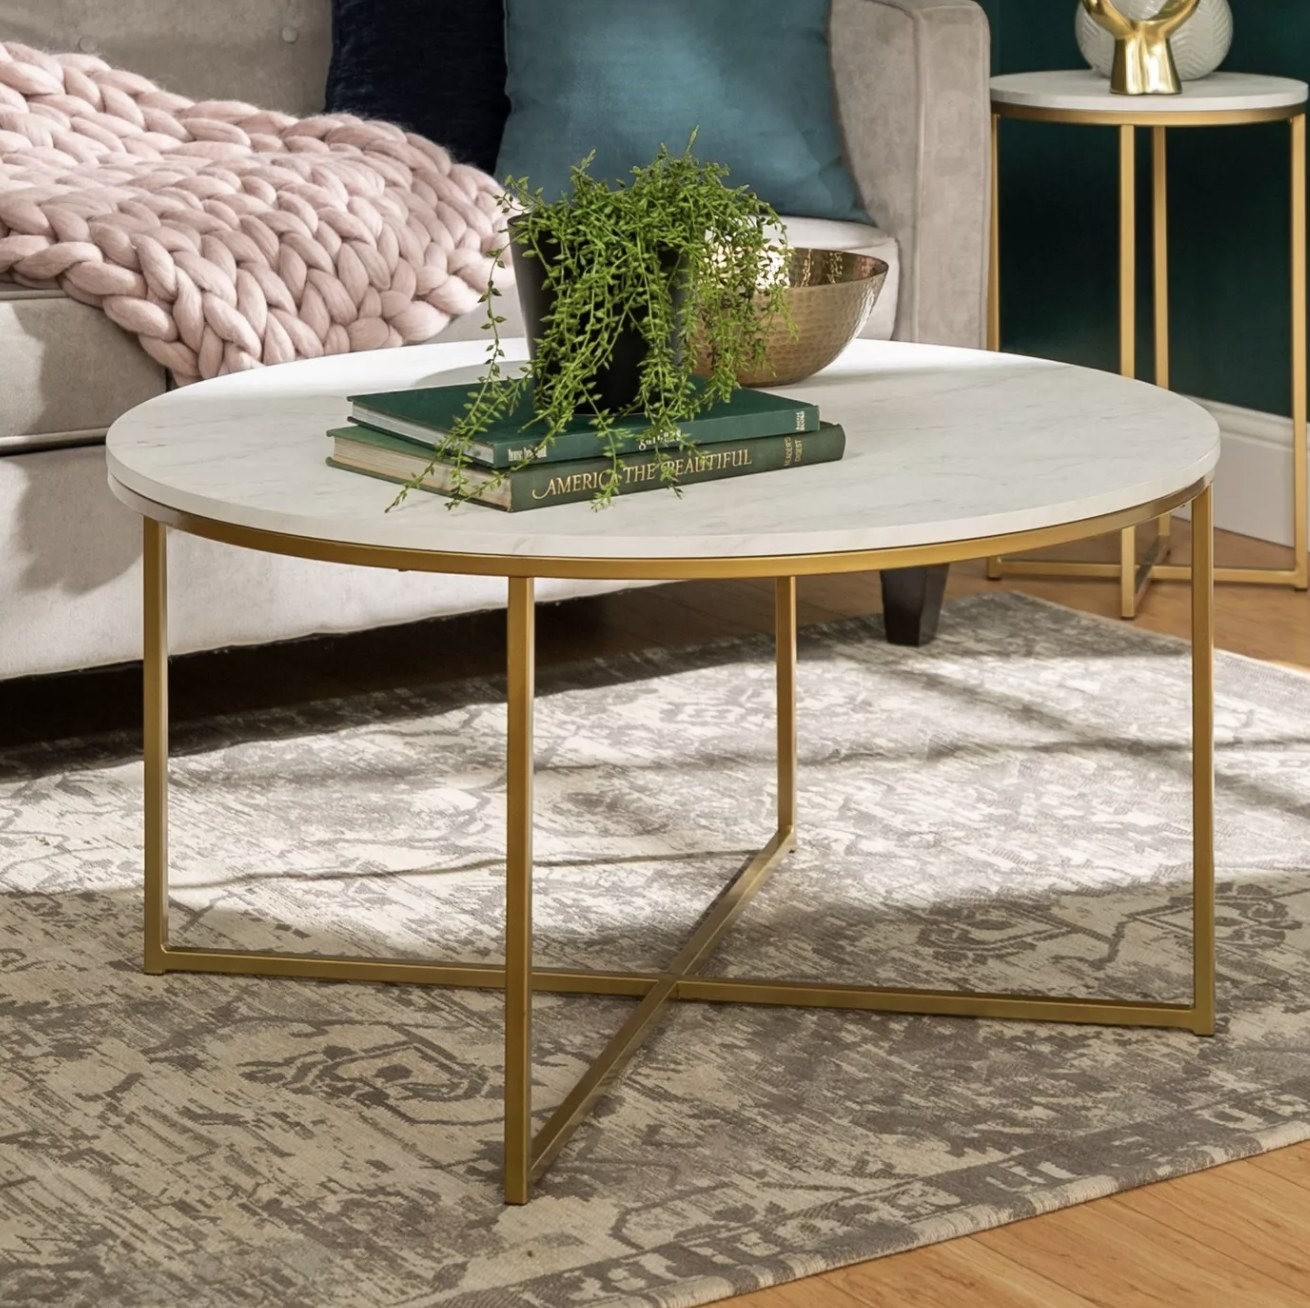 A round white coffee table with gold accents in a living room